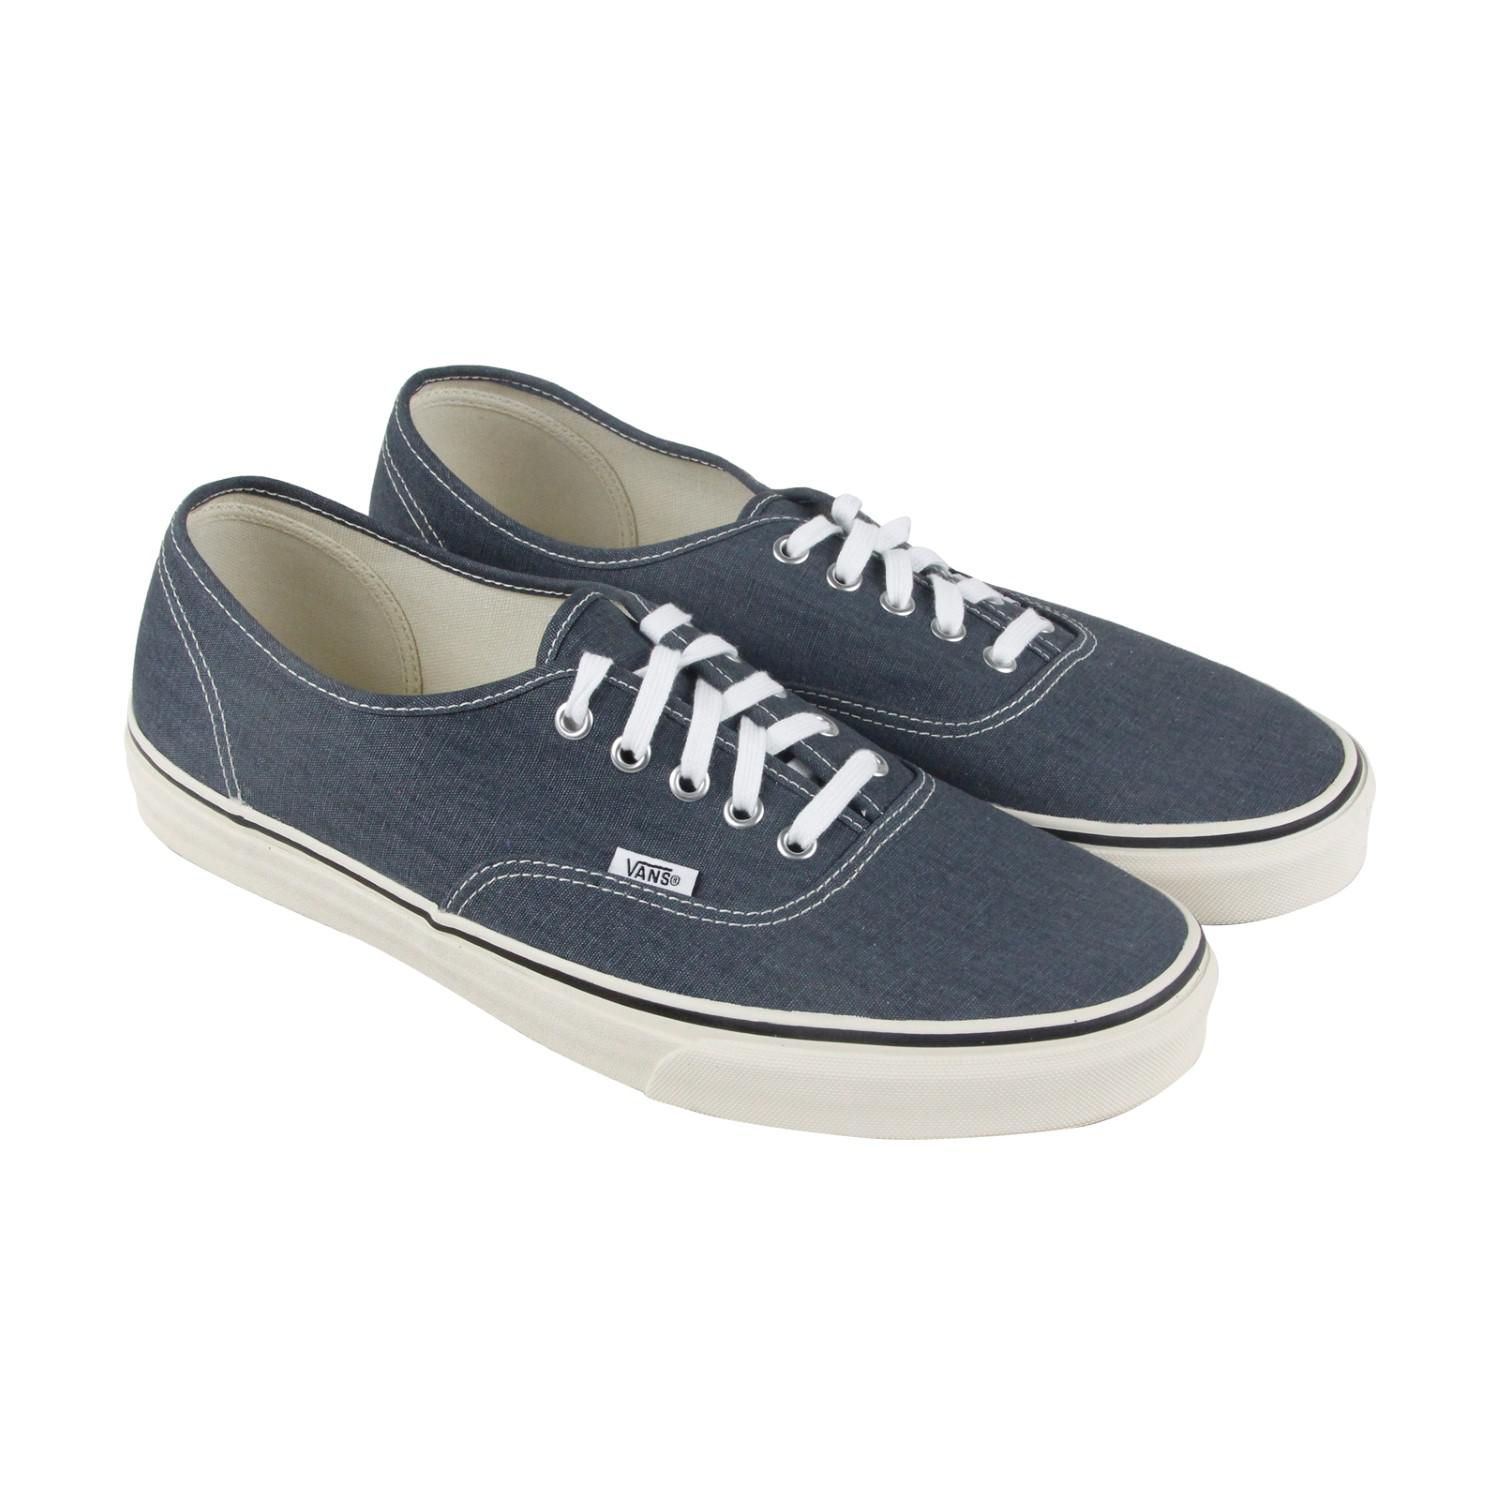 2bb05afa4a Lyst - Vans Authentic Vintage Navy Turtledove Lace Up Sneakers in ...